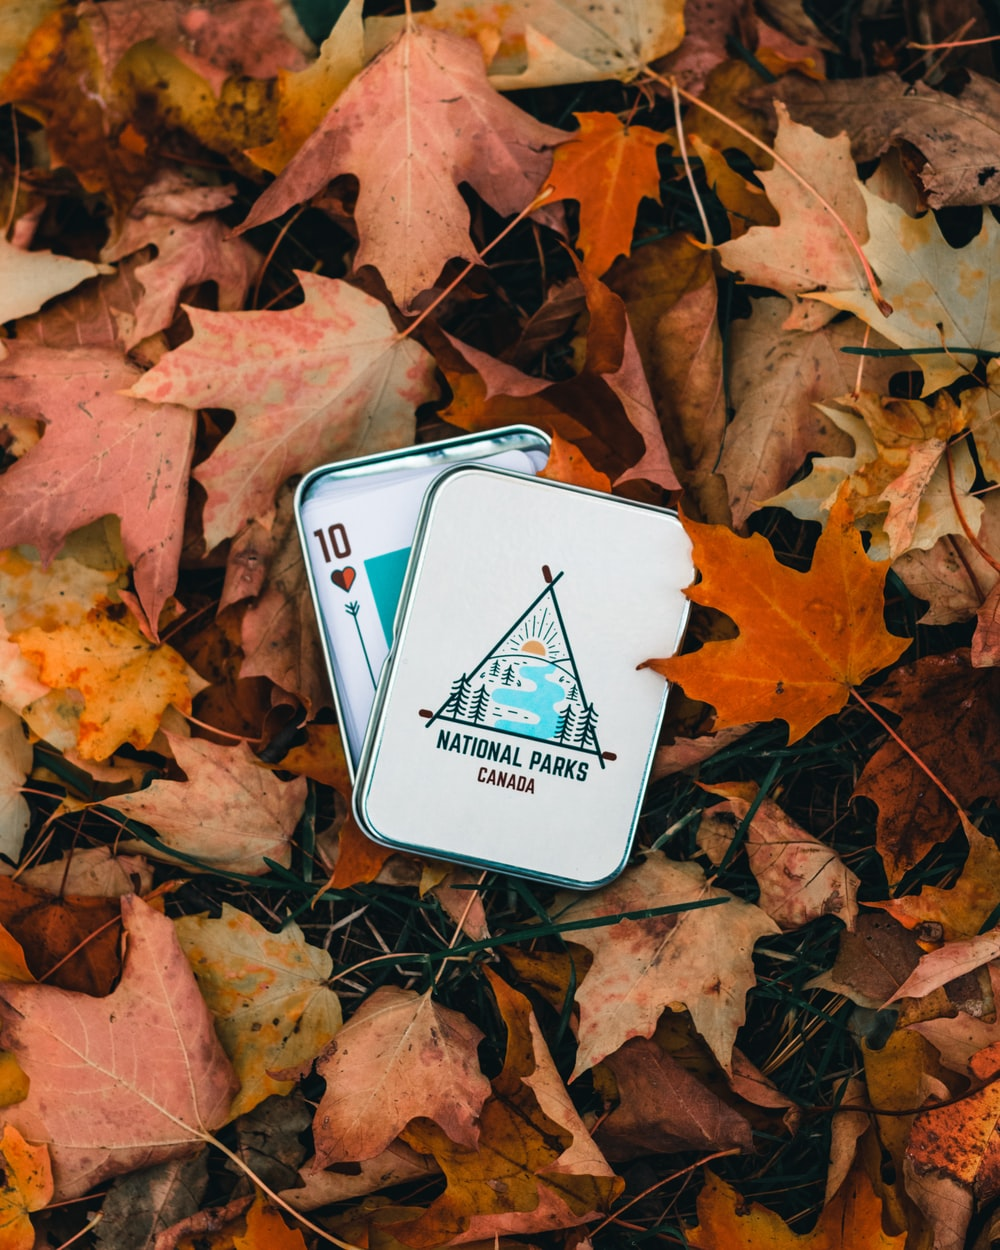 white and blue playing card on brown dried leaves